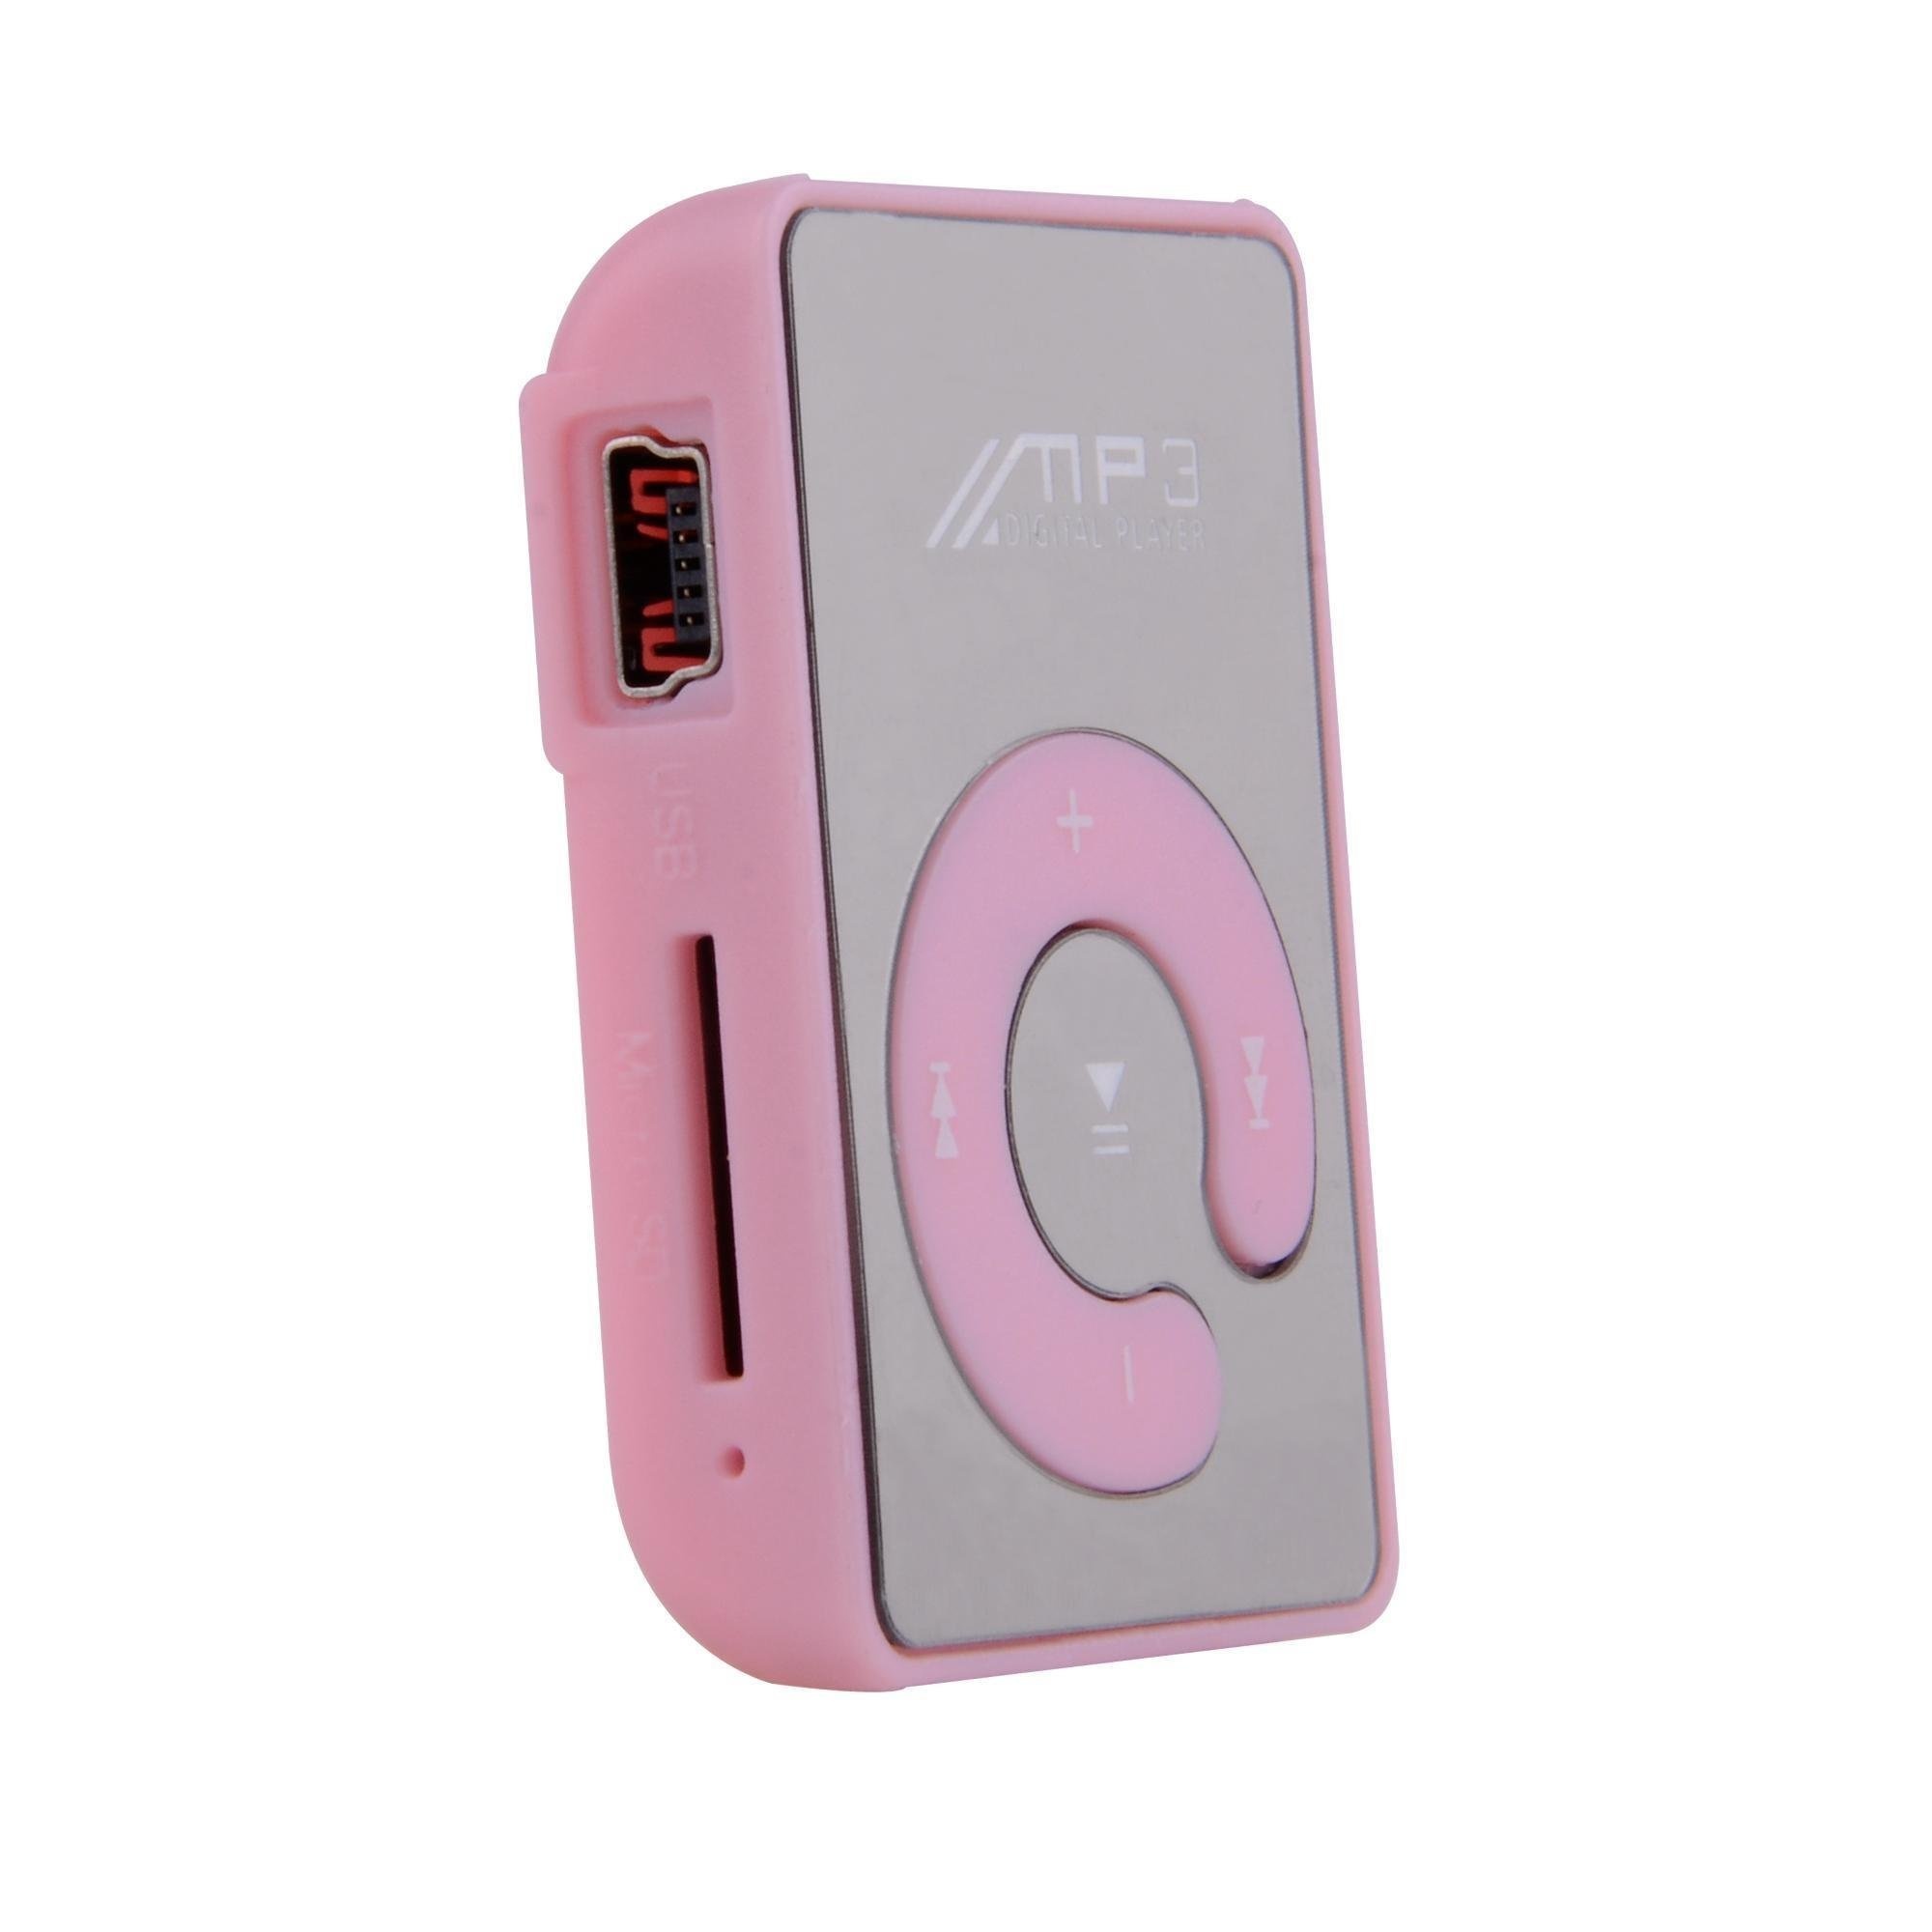 gonikm Mini Fashion Clip Sport USB Micro SD TF Mirror C Button MP3 Music Media Player Pink MP3 & MP4 Players